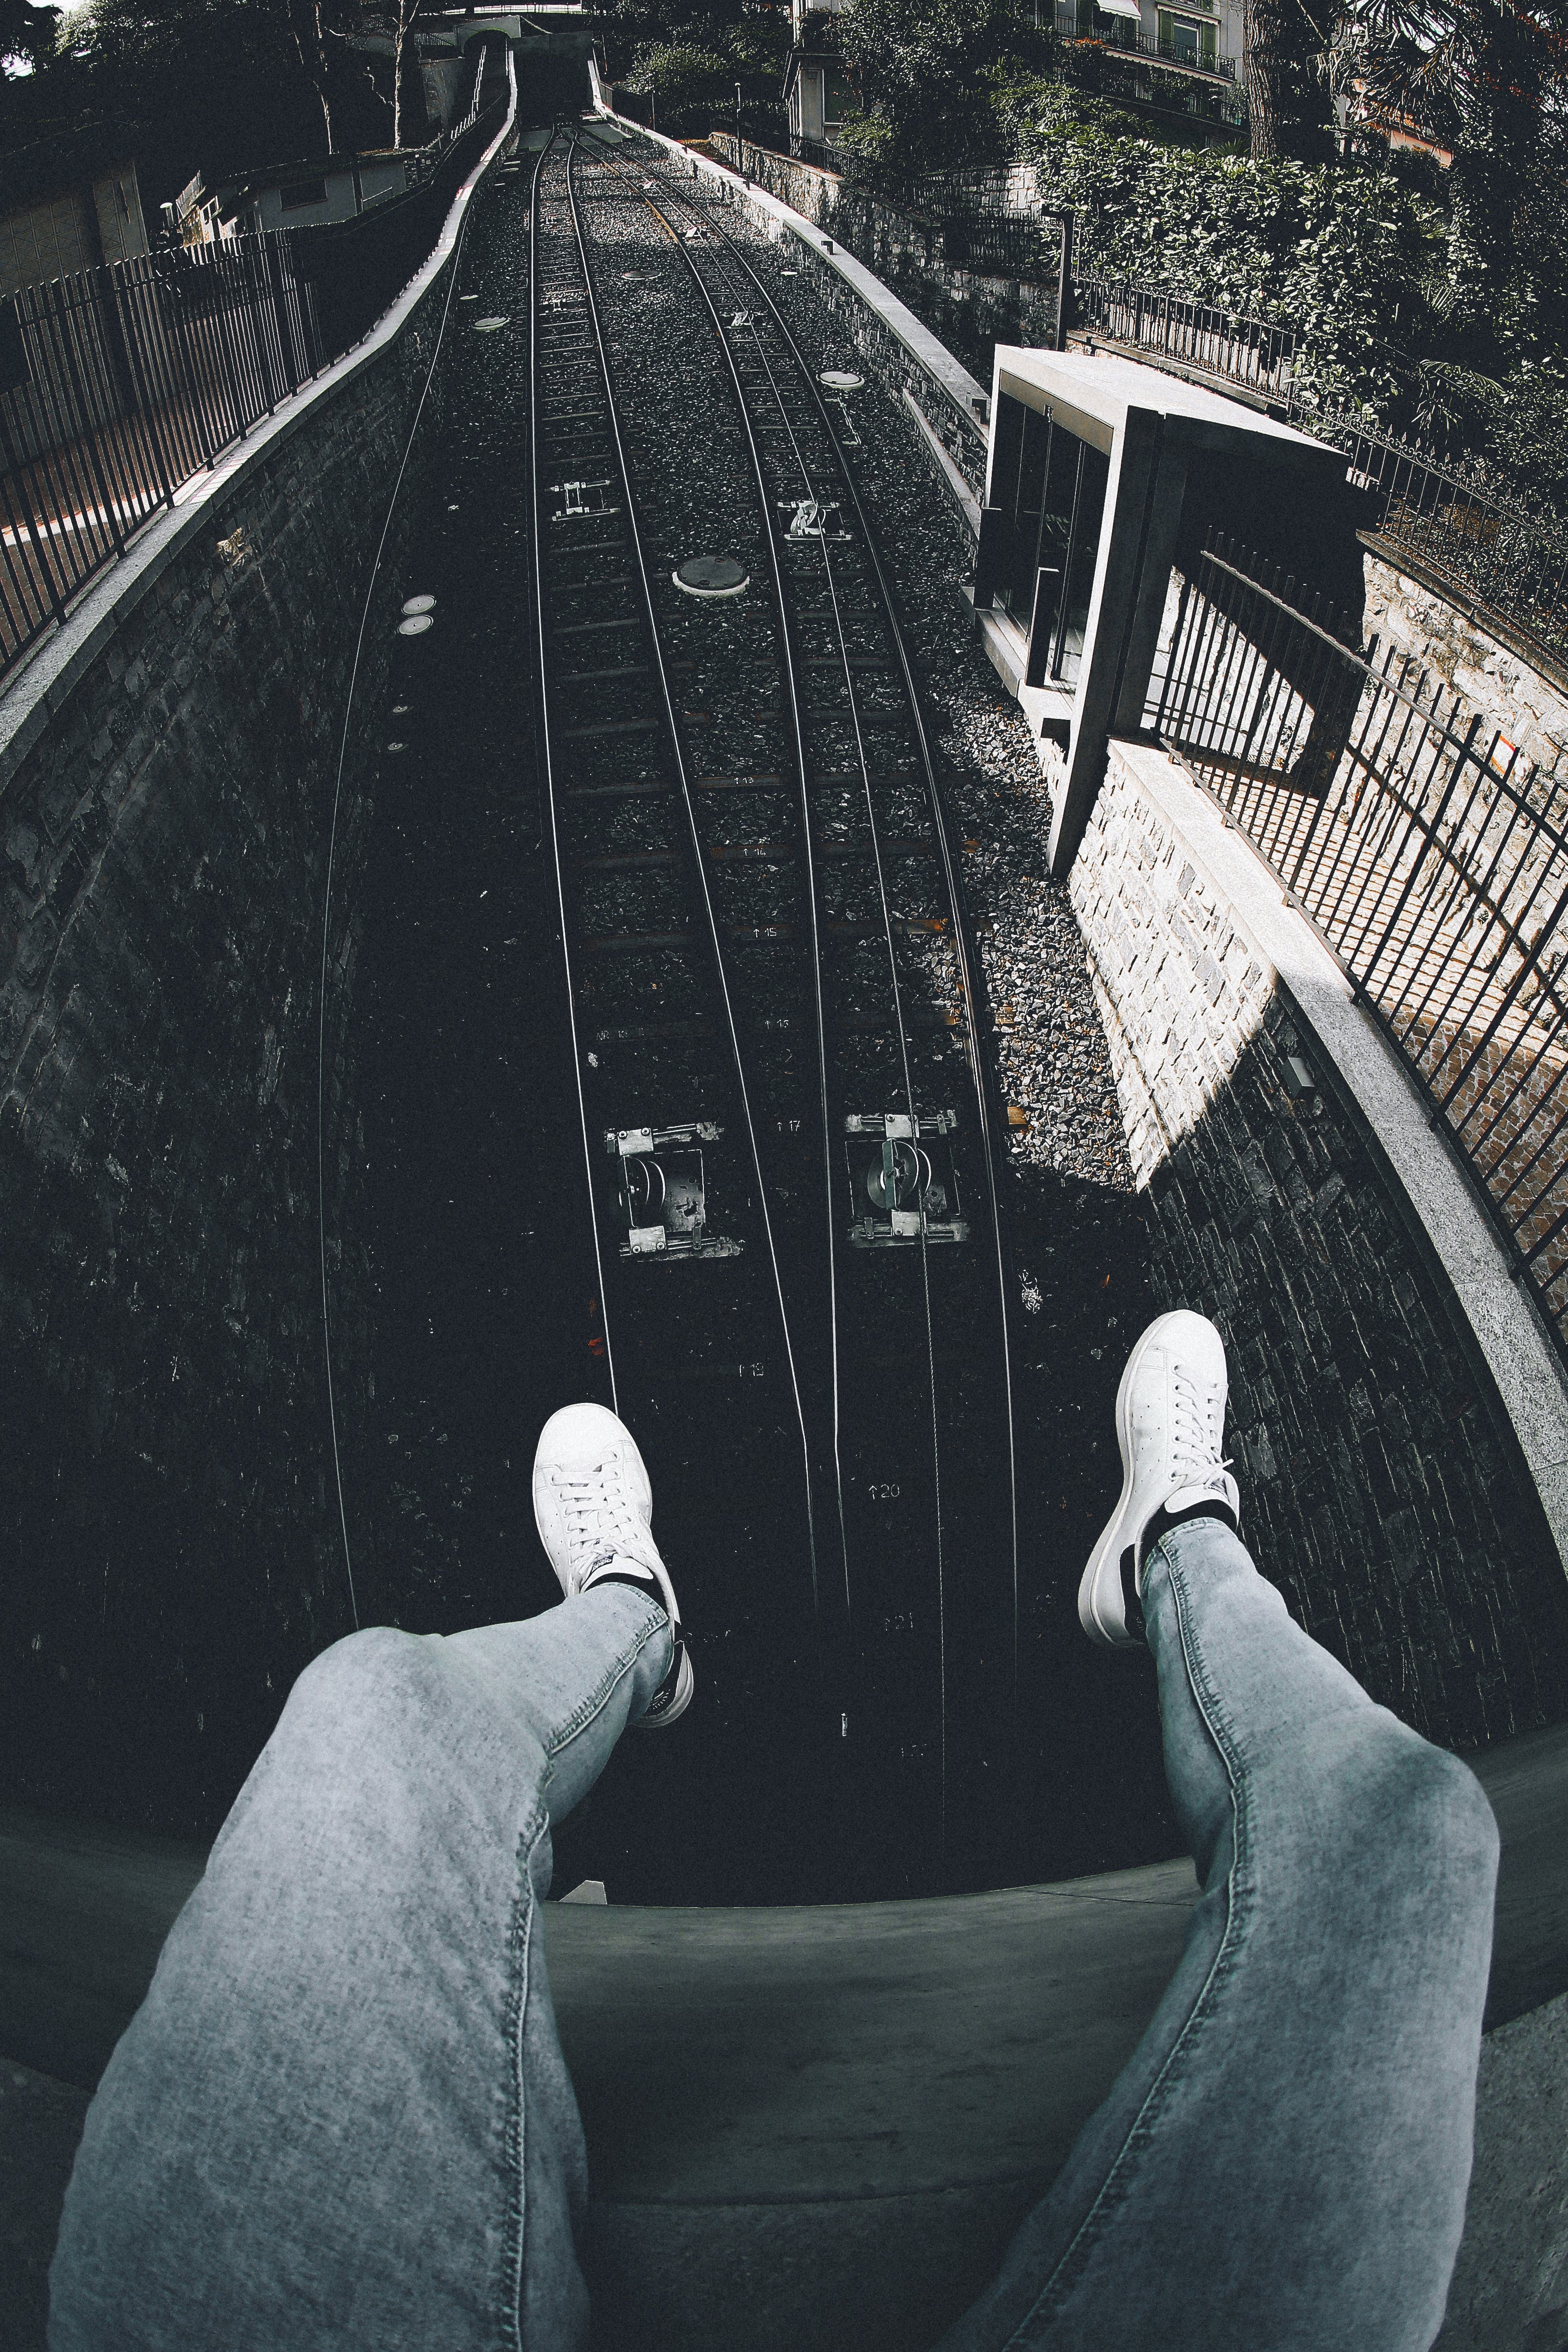 Person Siting on Roof in Front of Train Railway